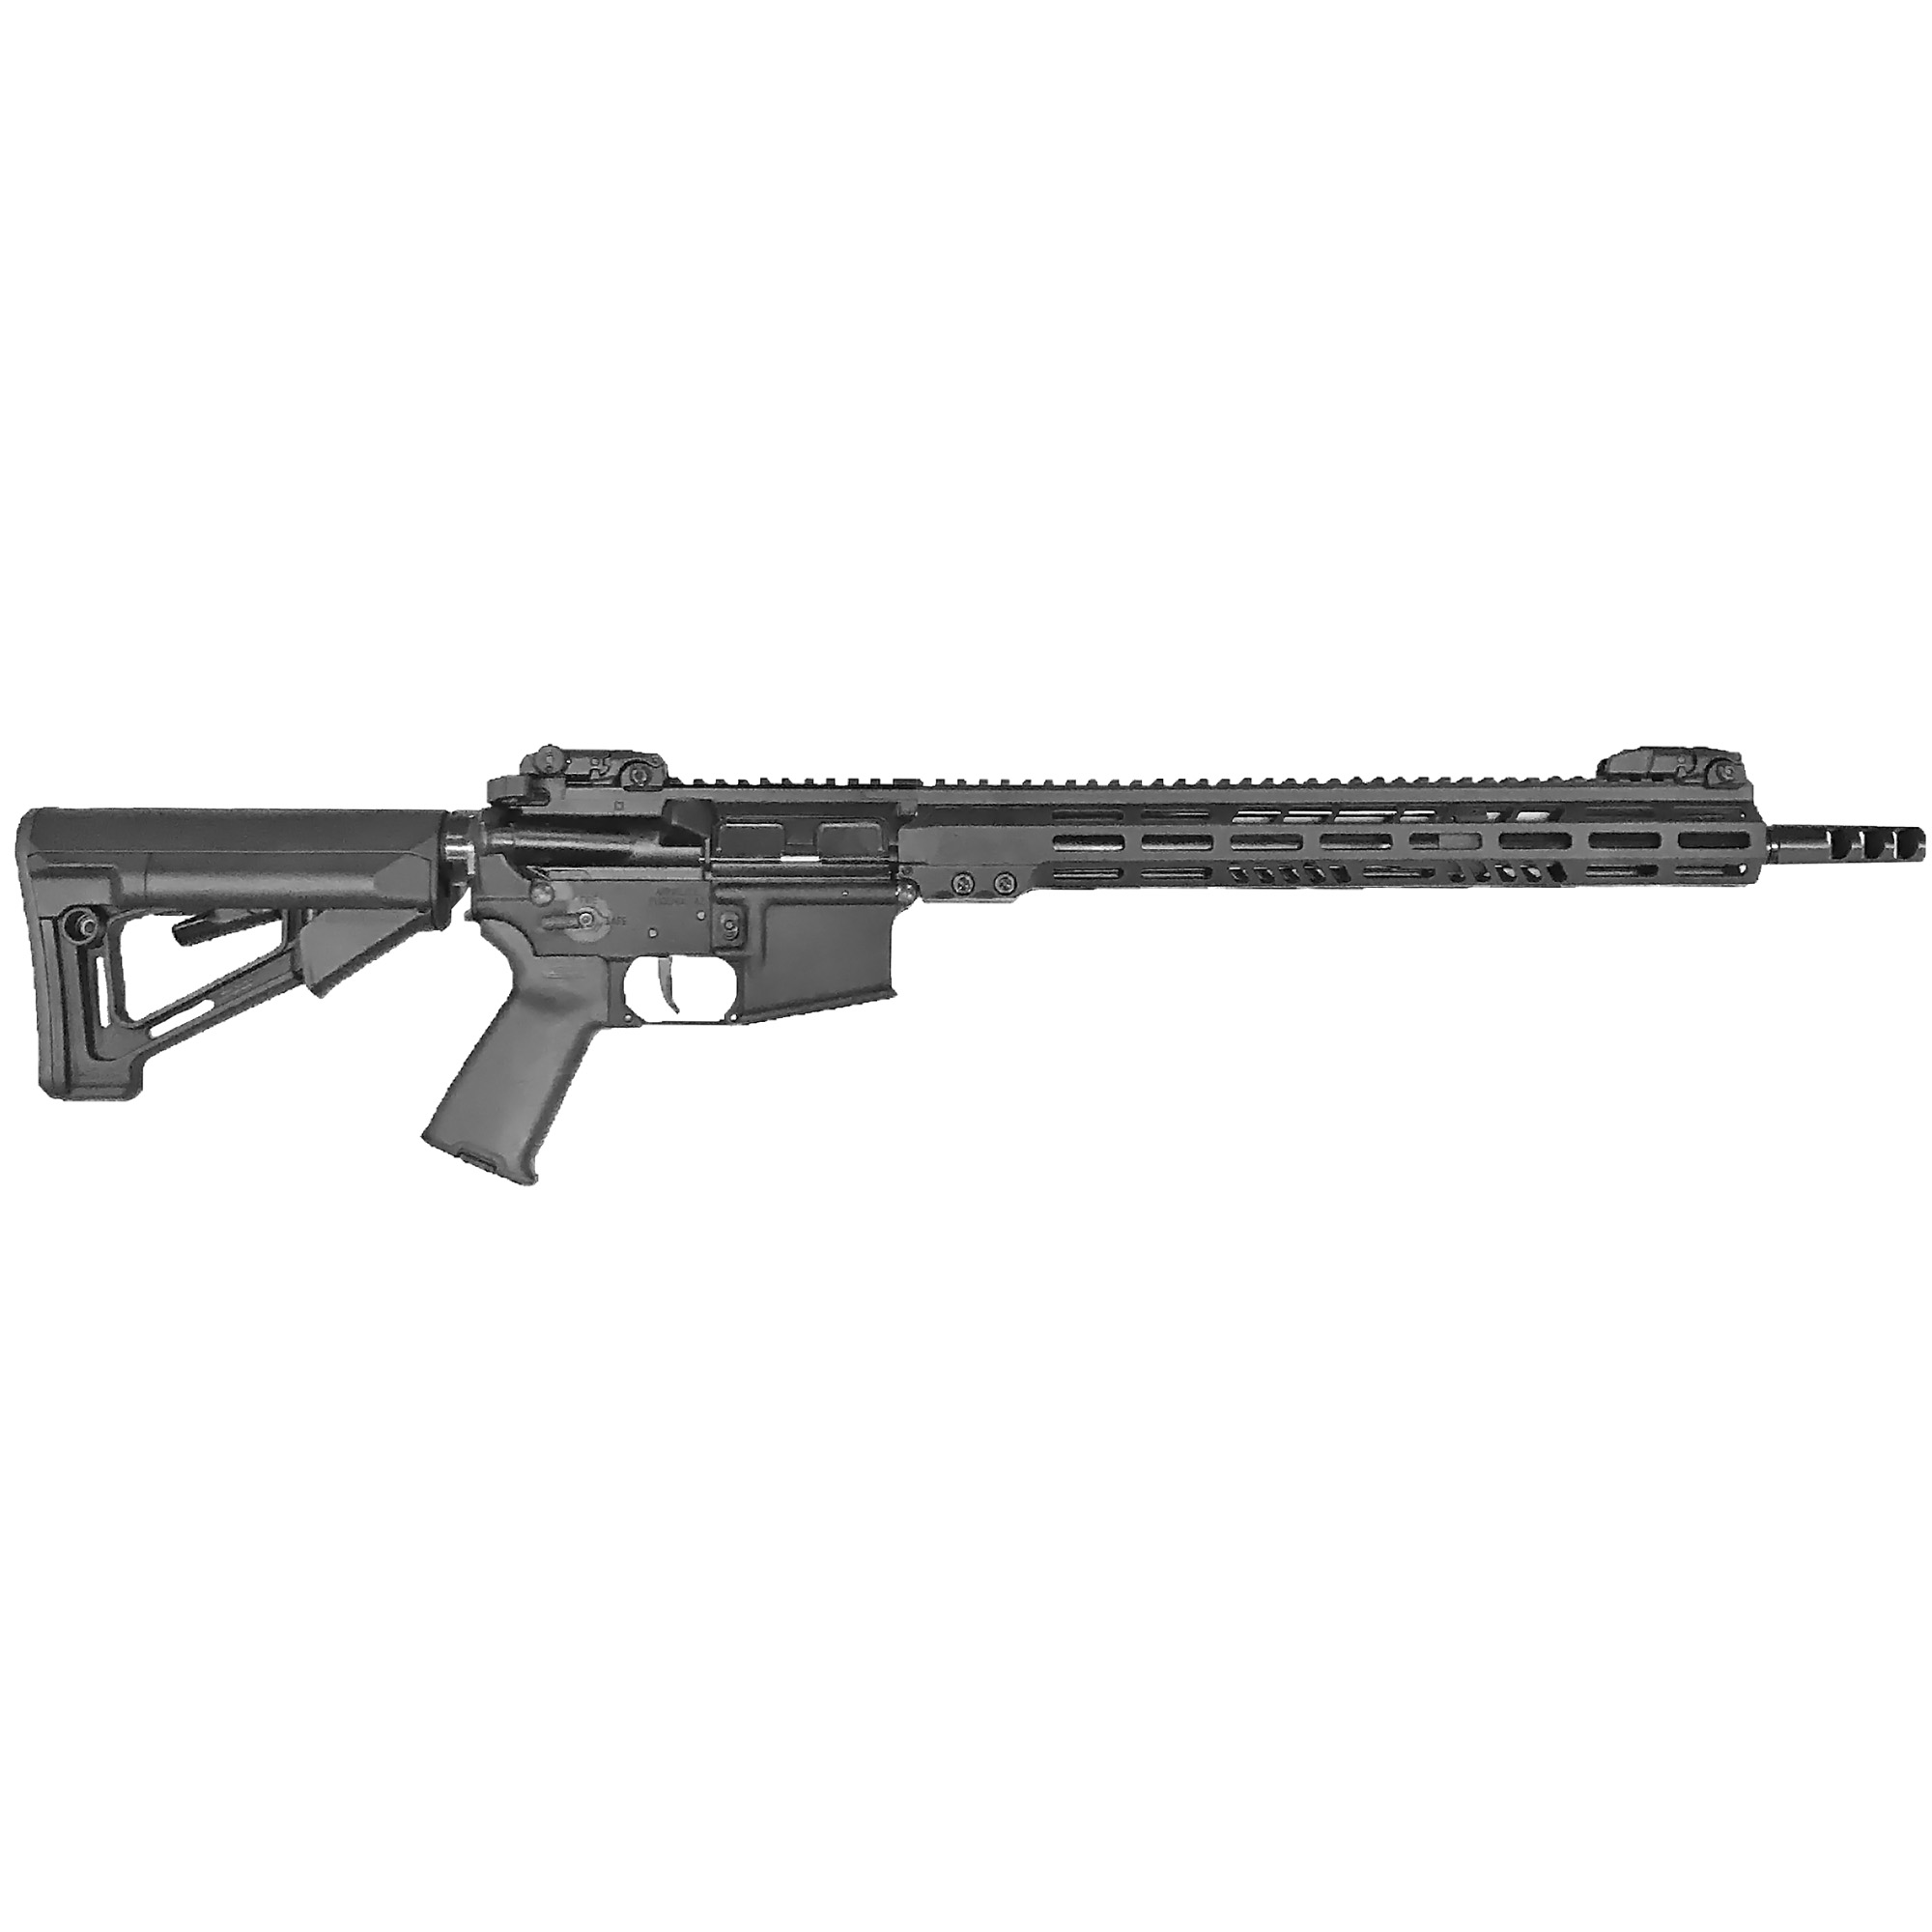 """With its 16"""" barrel at the heart of its design"""" the M15TAC16 blends rugged durability with exacting precision. The tactical handguard's slim"""" octagonal profile sports a full-length MIL-STD 1913 12 o'clock rail for sights and accessories. The adjustable gas block allows the user to tune the rifle for their preferred ammunition and/or suppressor use. Like all tactical series rifles"""" it comes standard with Magpul MBUS flip-up sights."""